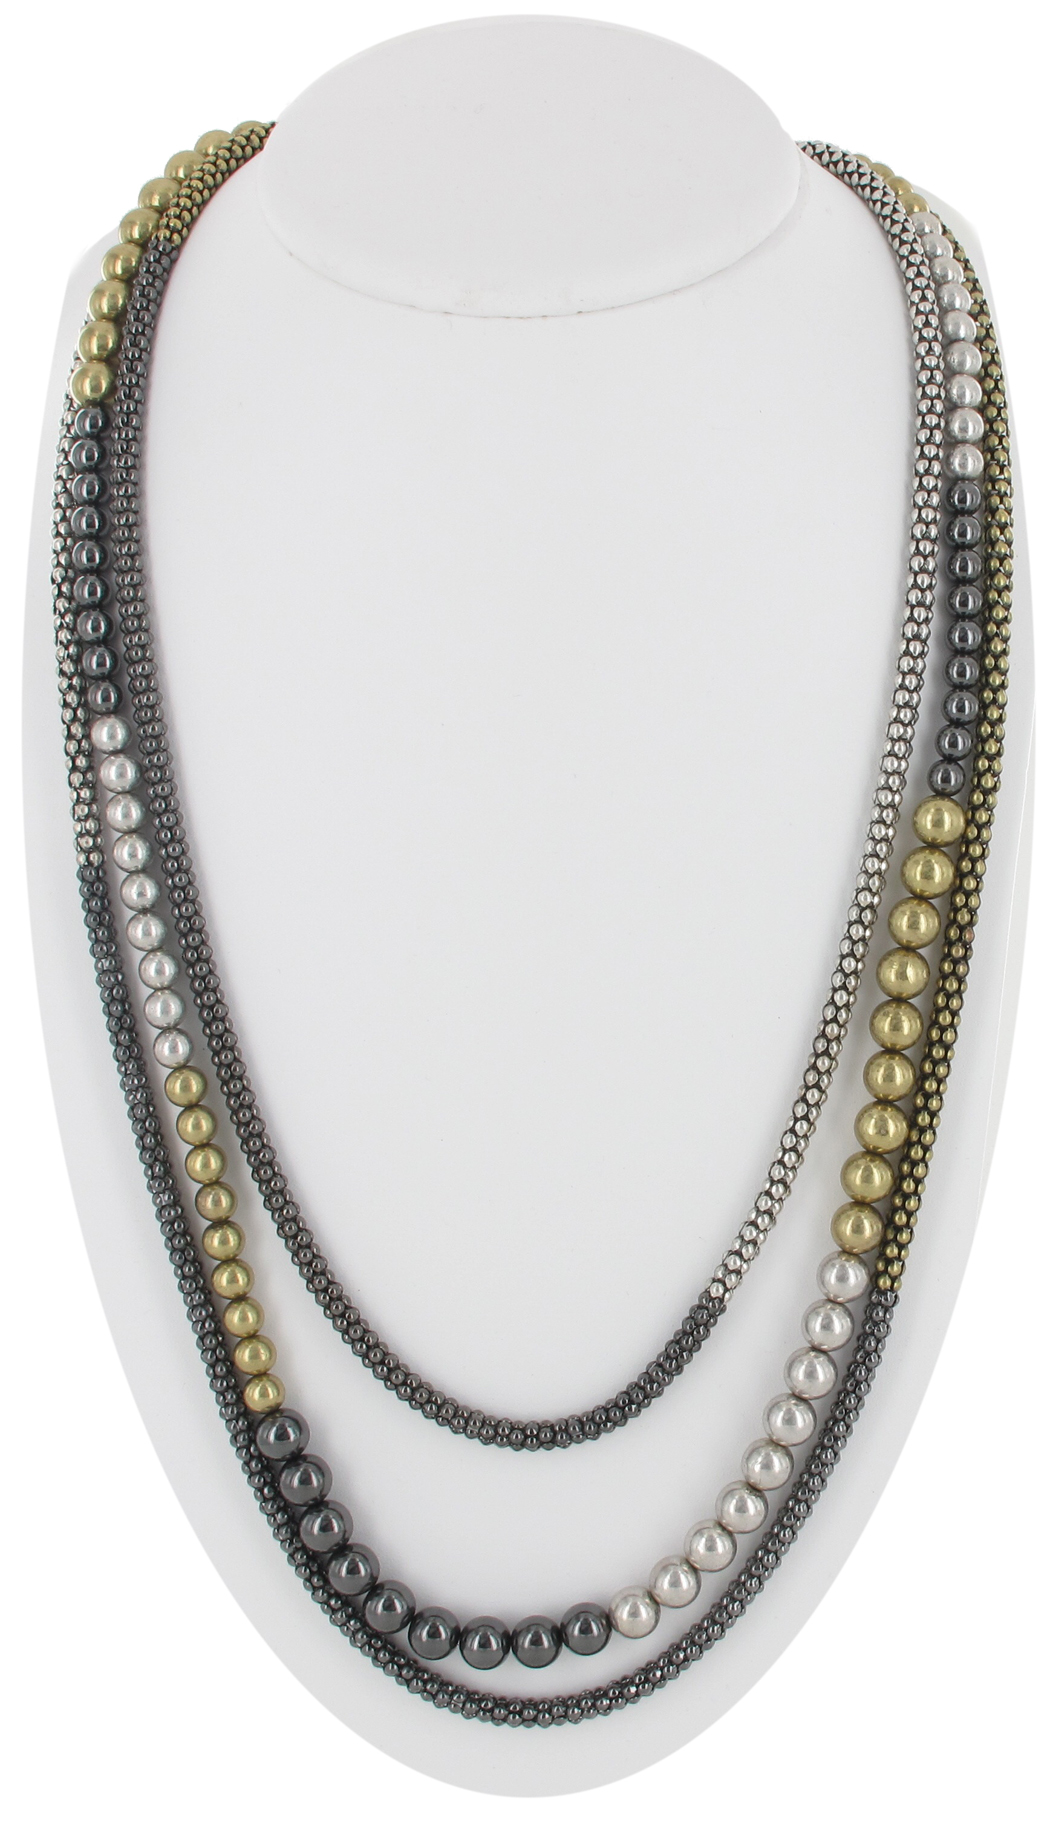 Silver Gold Tone Gunmetal Mesh Beads Multi Strand Long Necklace